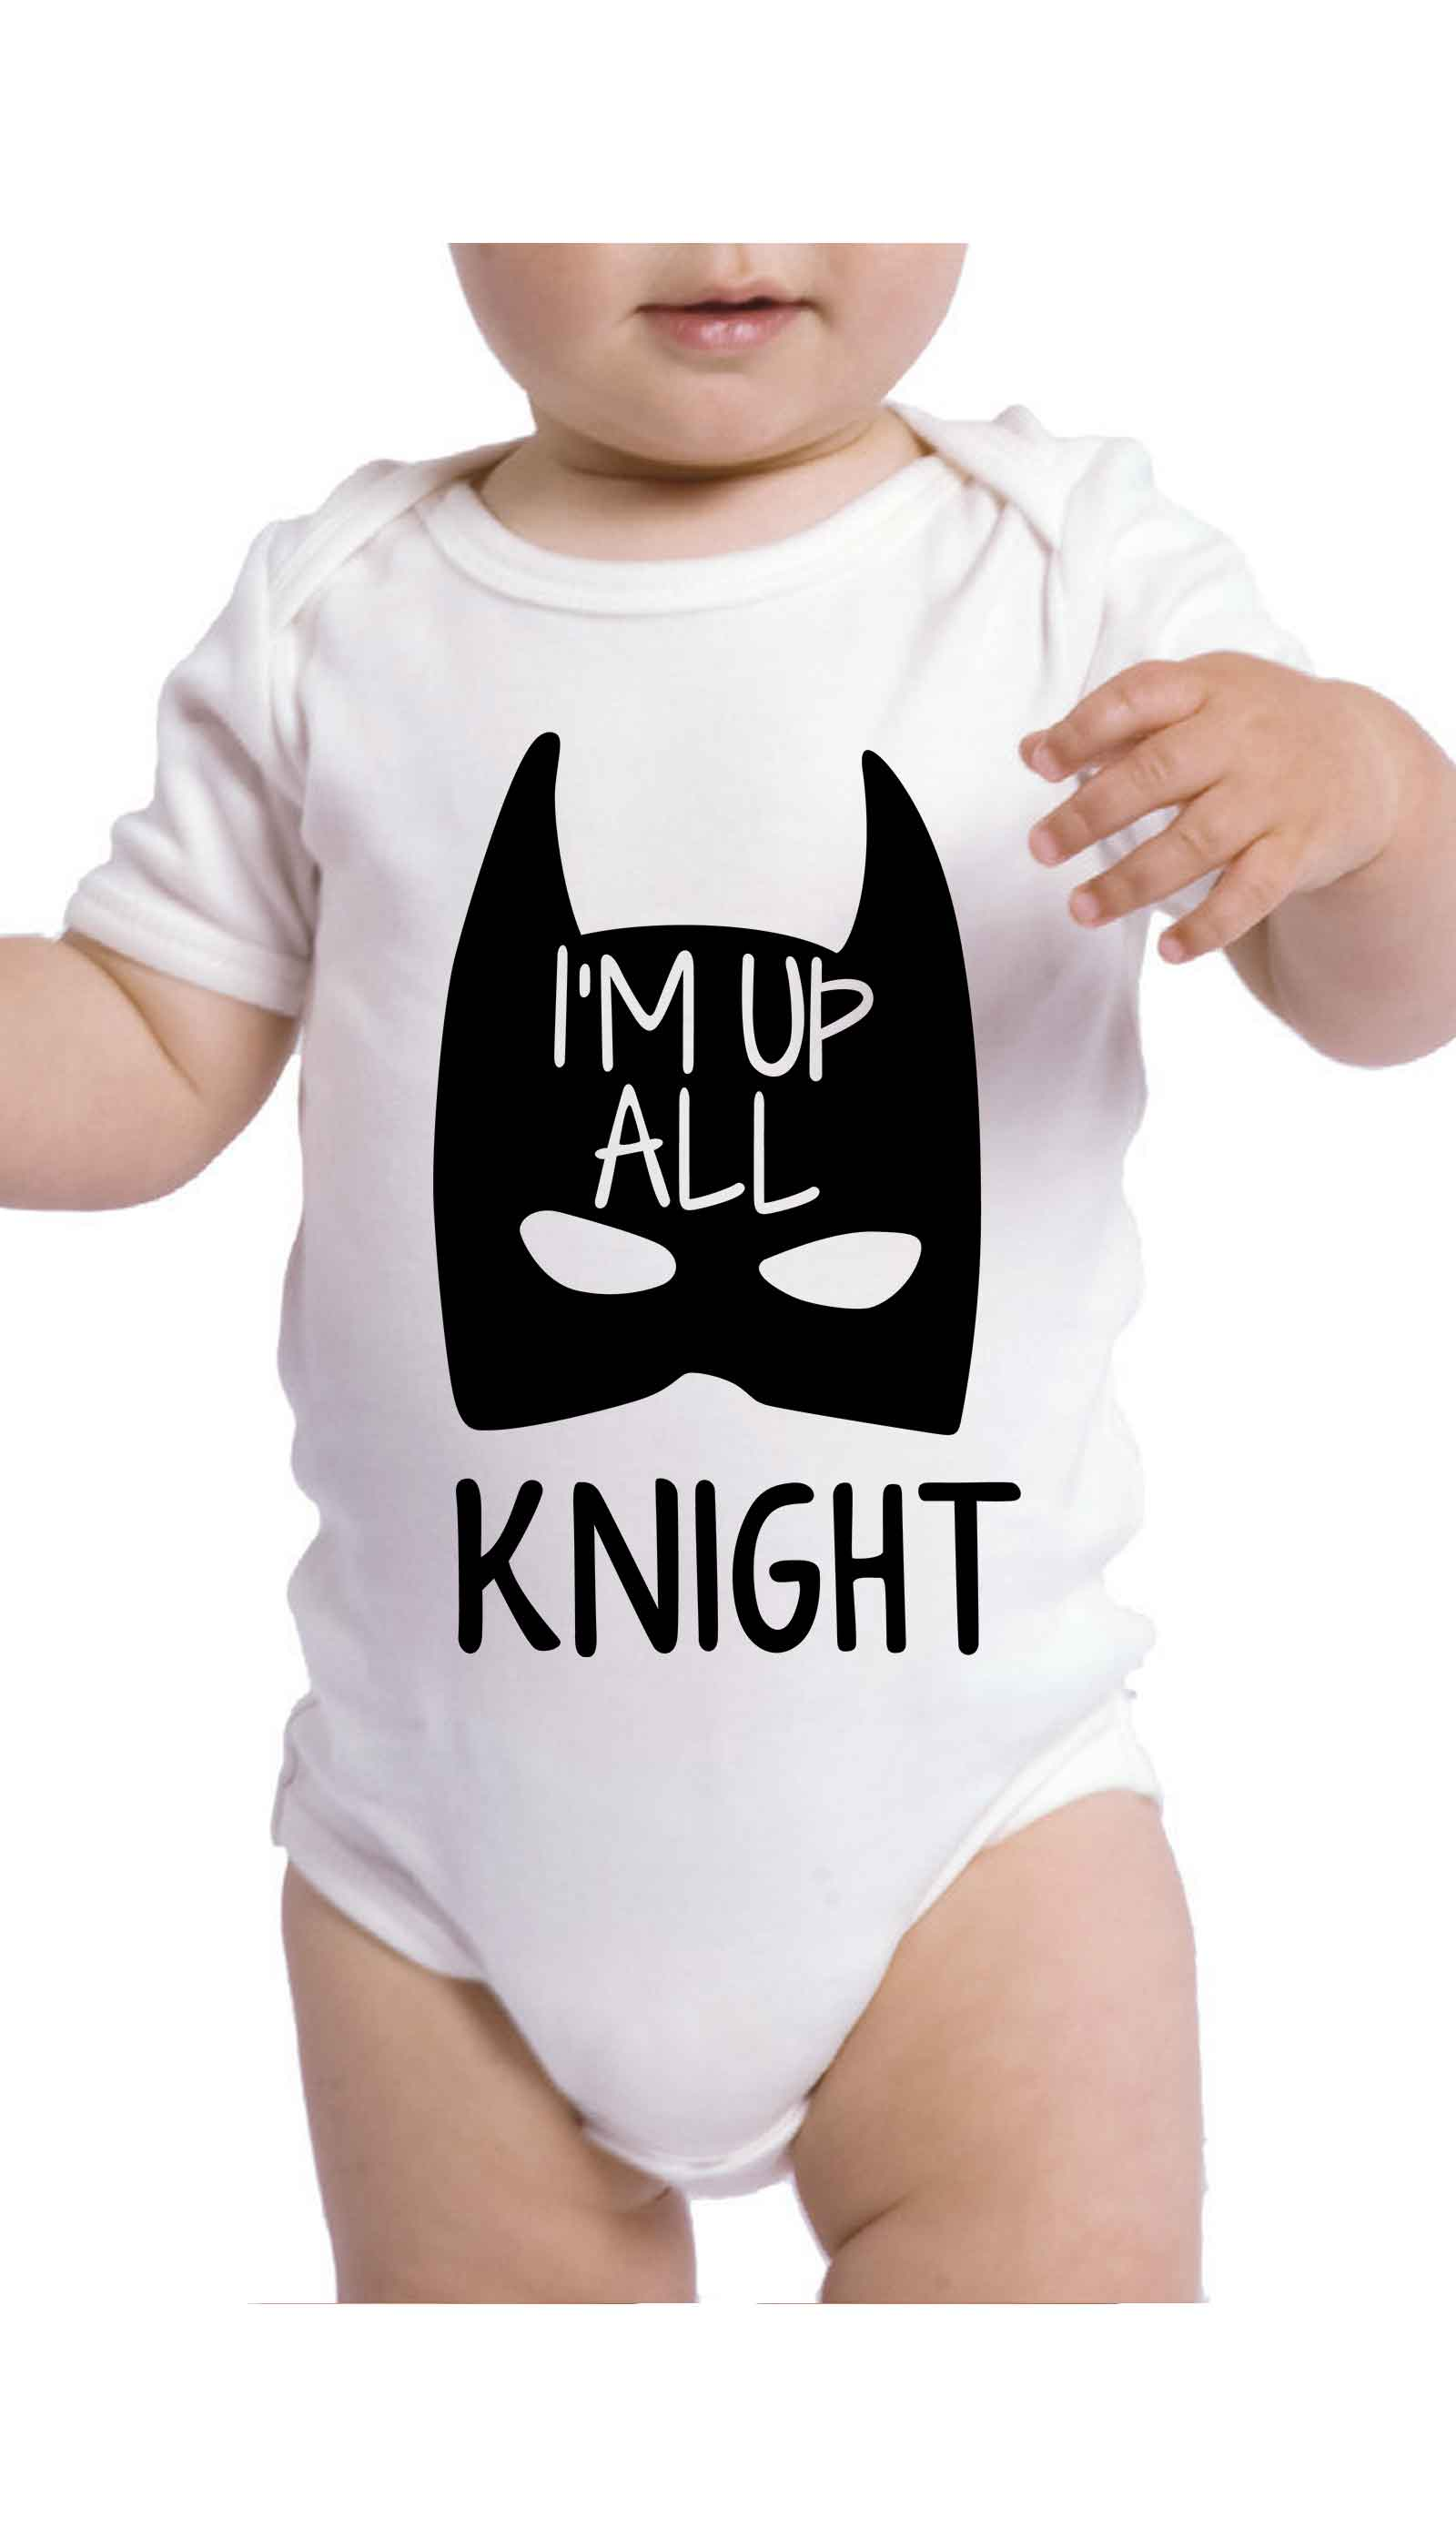 I'm Up All Knight Cute & Funny Baby Infant Onesie | Sarcastic ME